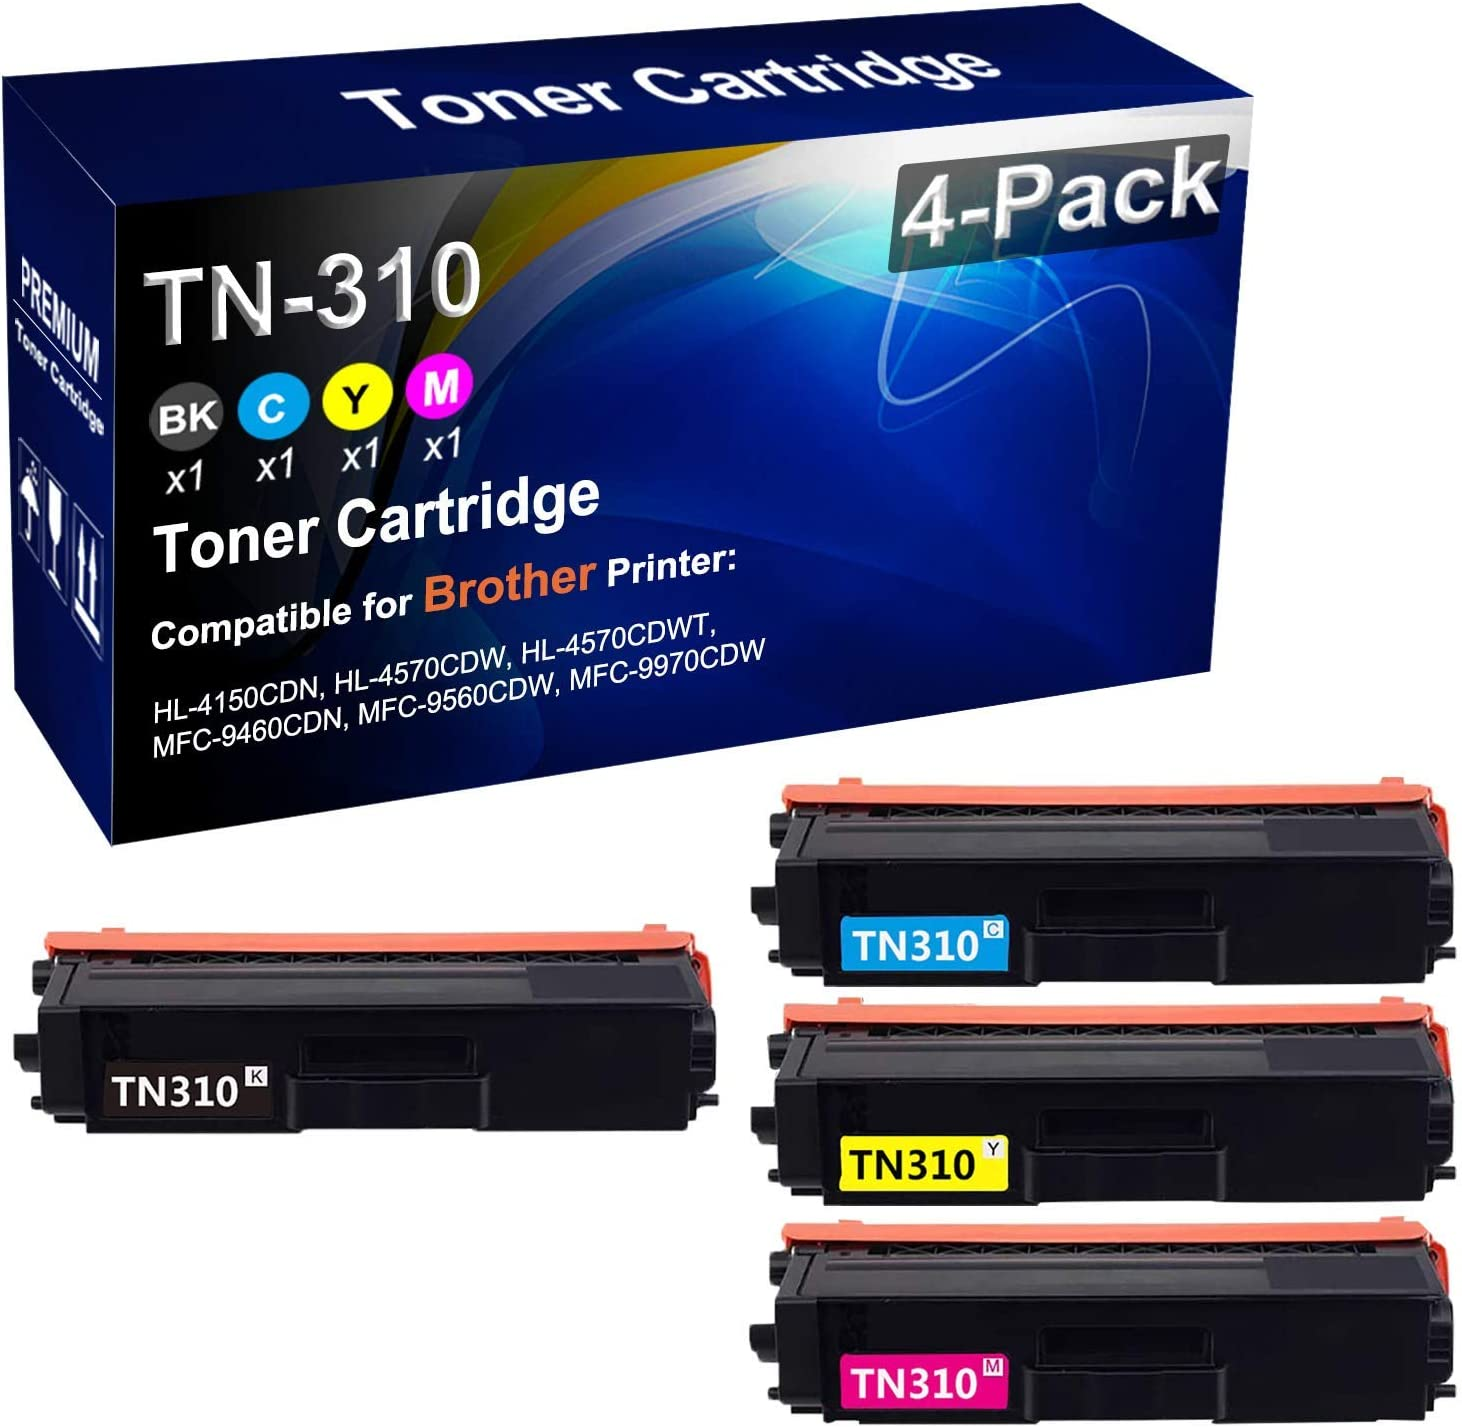 4-Pack BK+C+Y+M Compatible Color SALENEW very popular Yield High Cartridge Max 73% OFF Toner